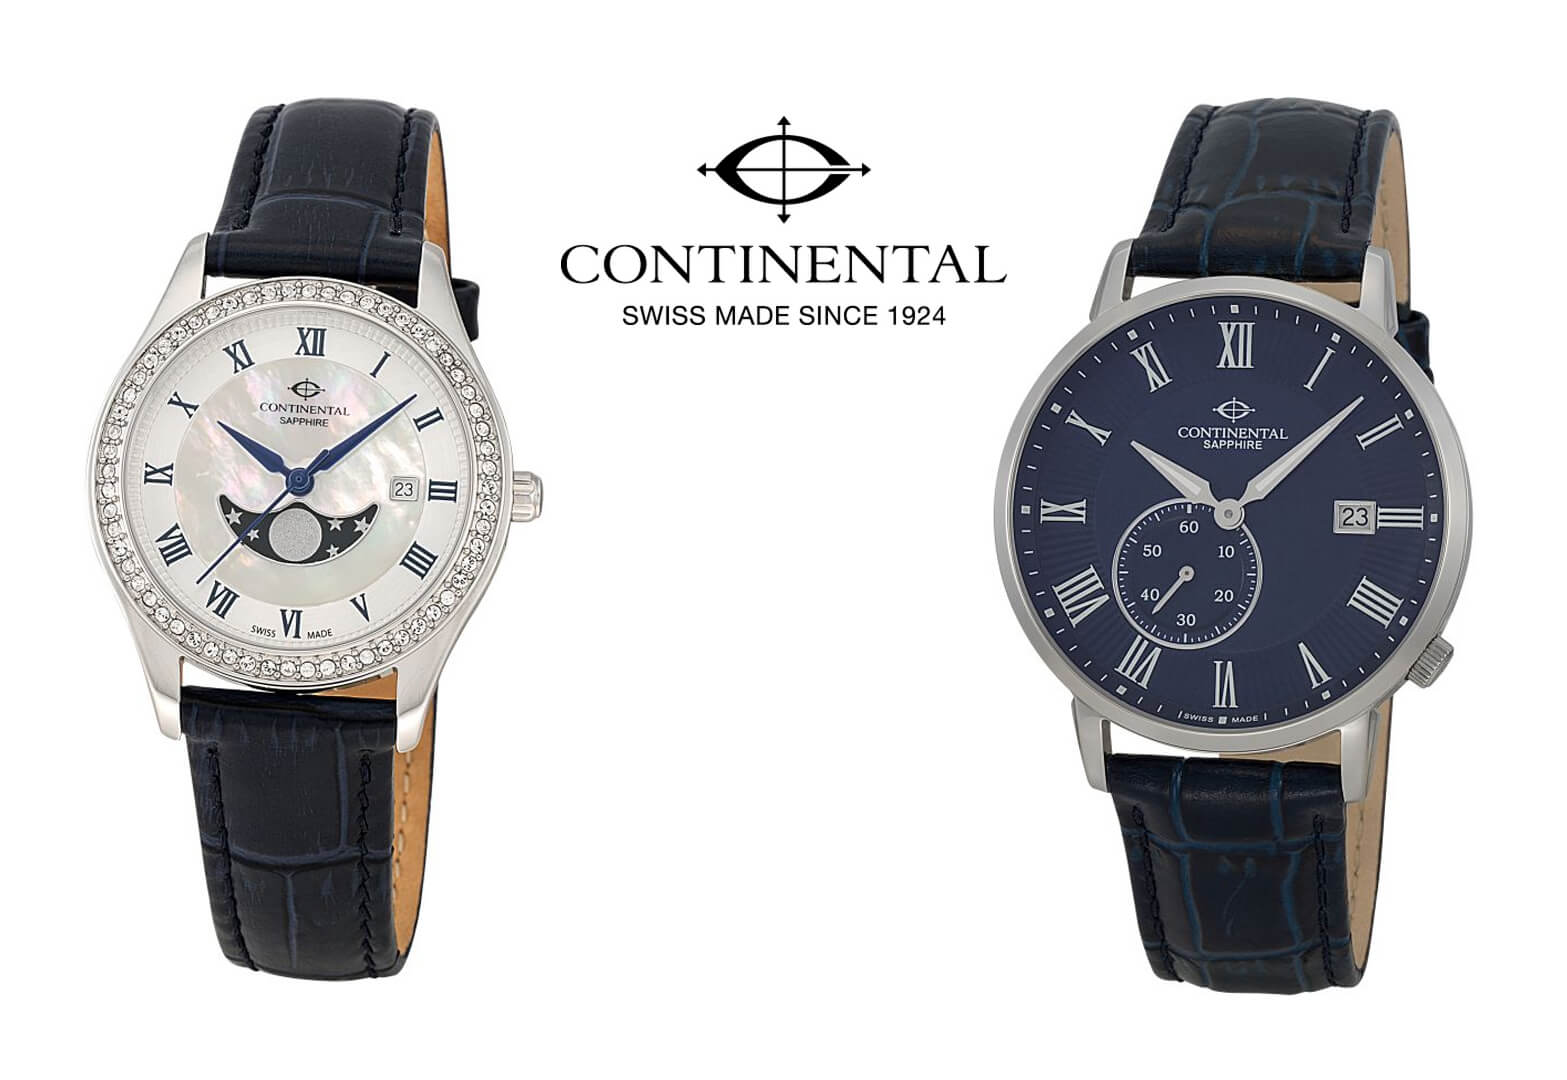 Pictured: Ladies Continental Watch and Men's Continental Watch